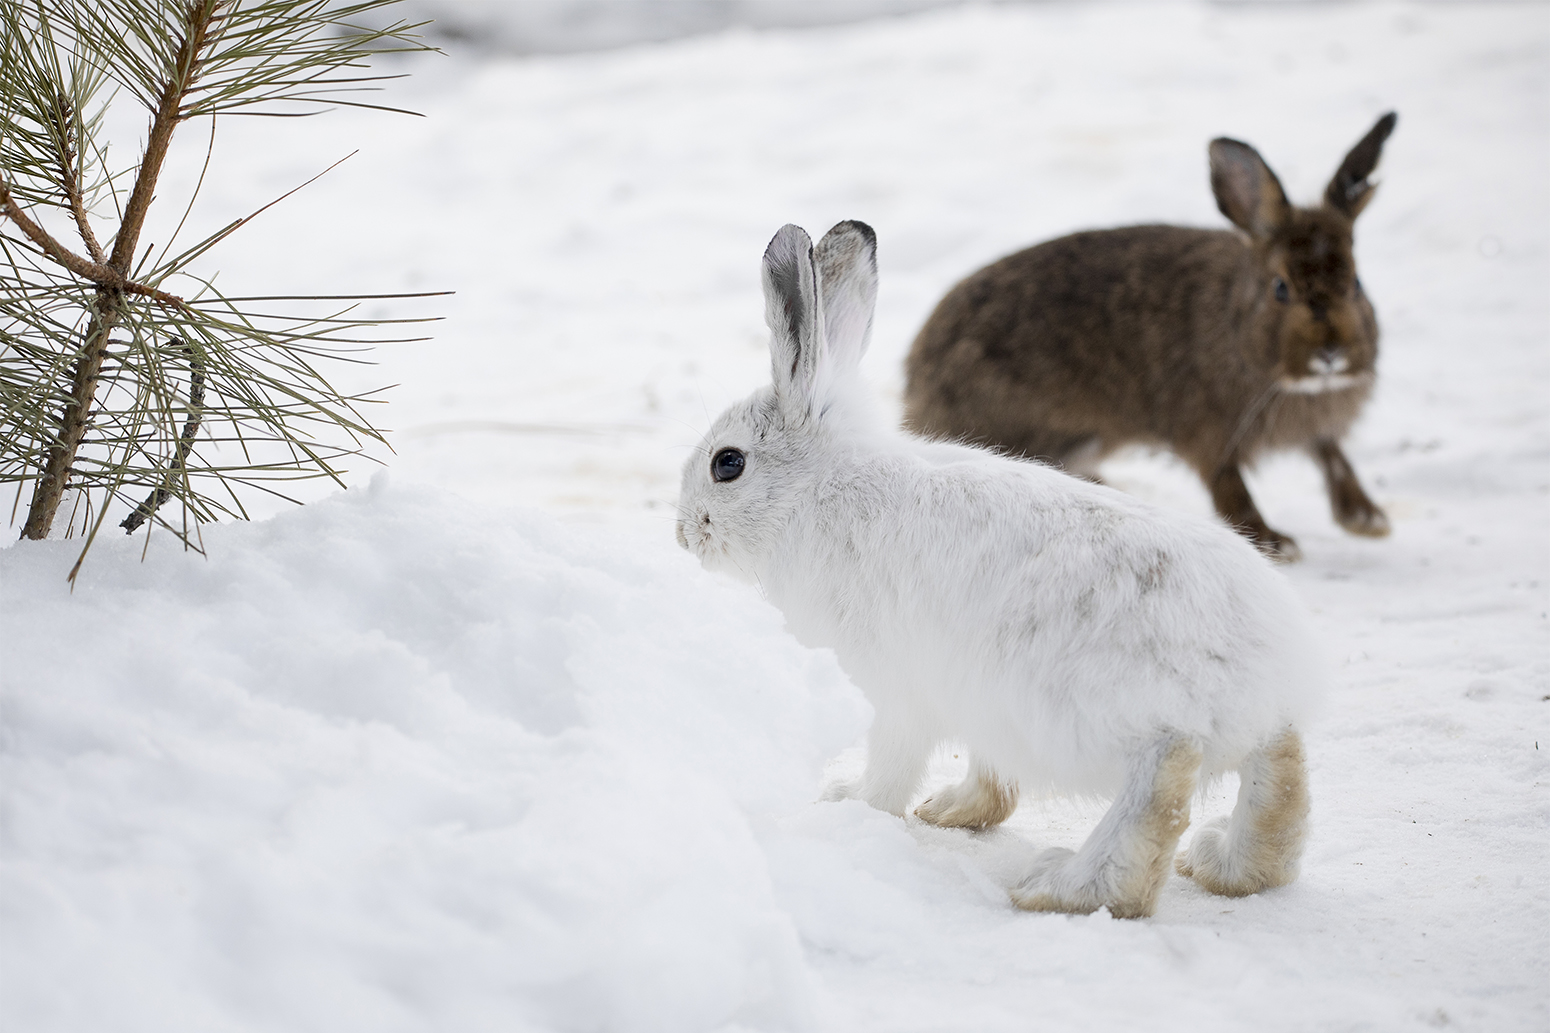 Animals With White Winter Camouflage Could Struggle To